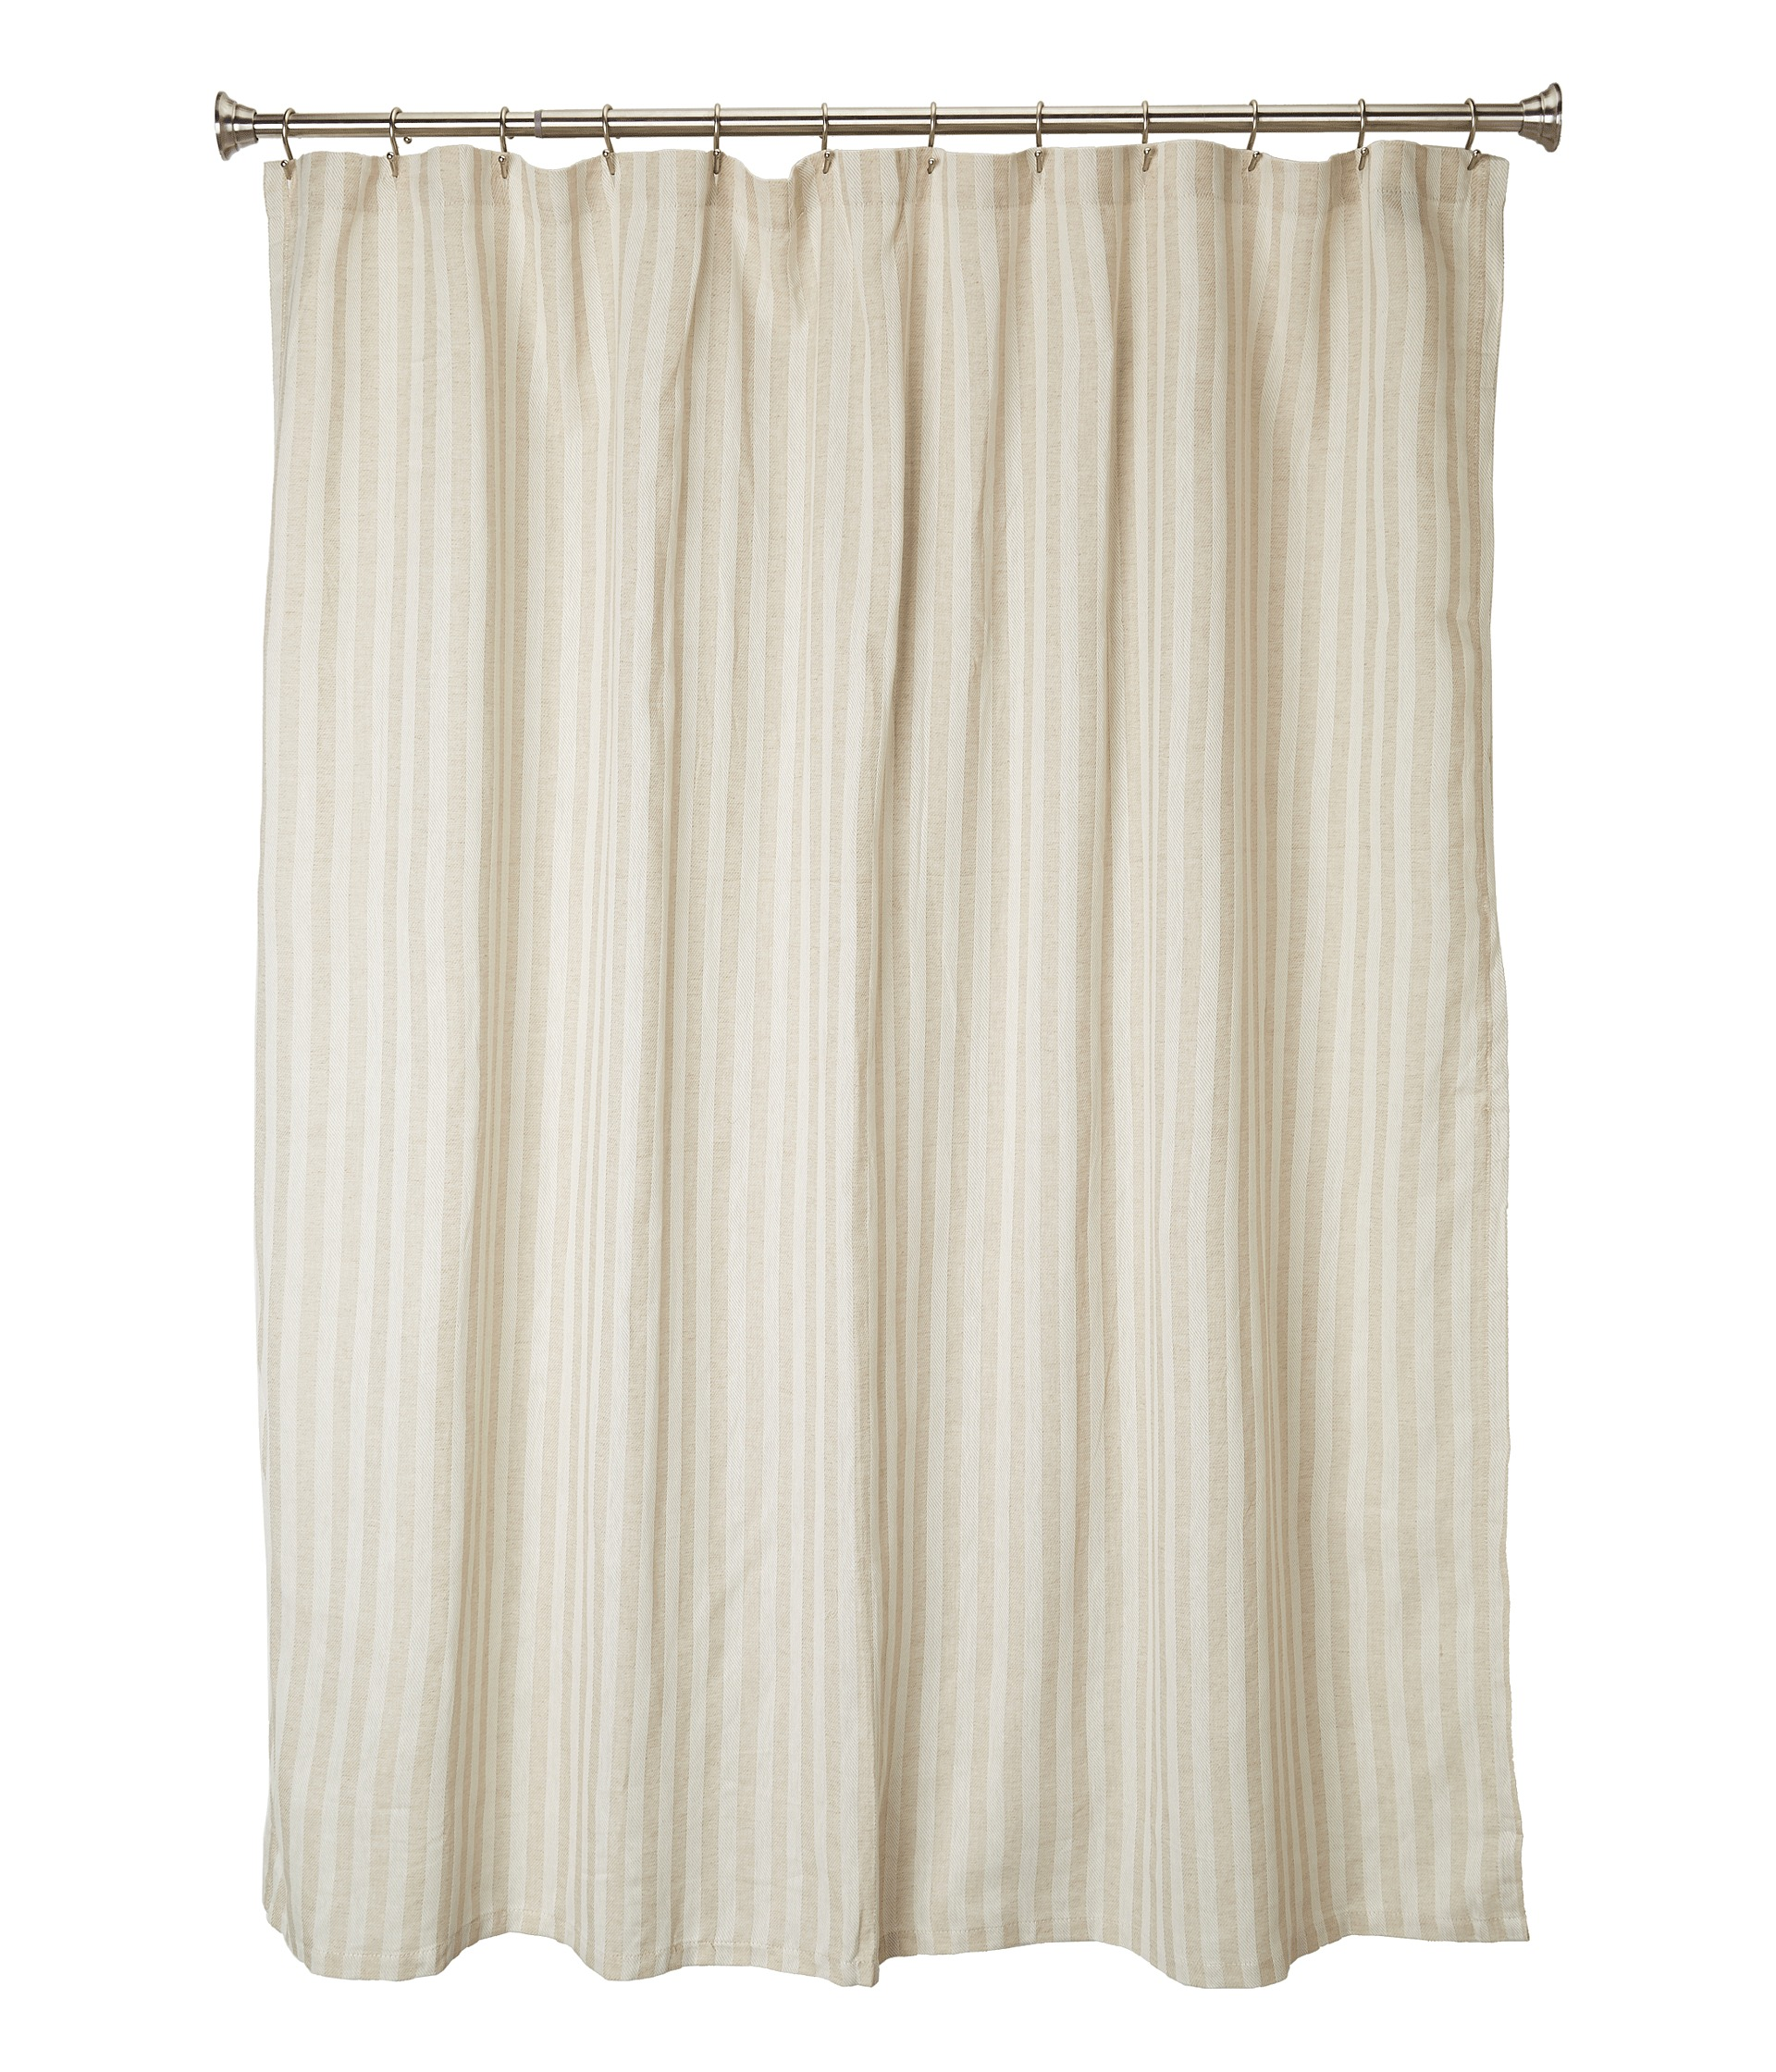 No Results For Kassatex Chevron Linen Shower Curtain Flax